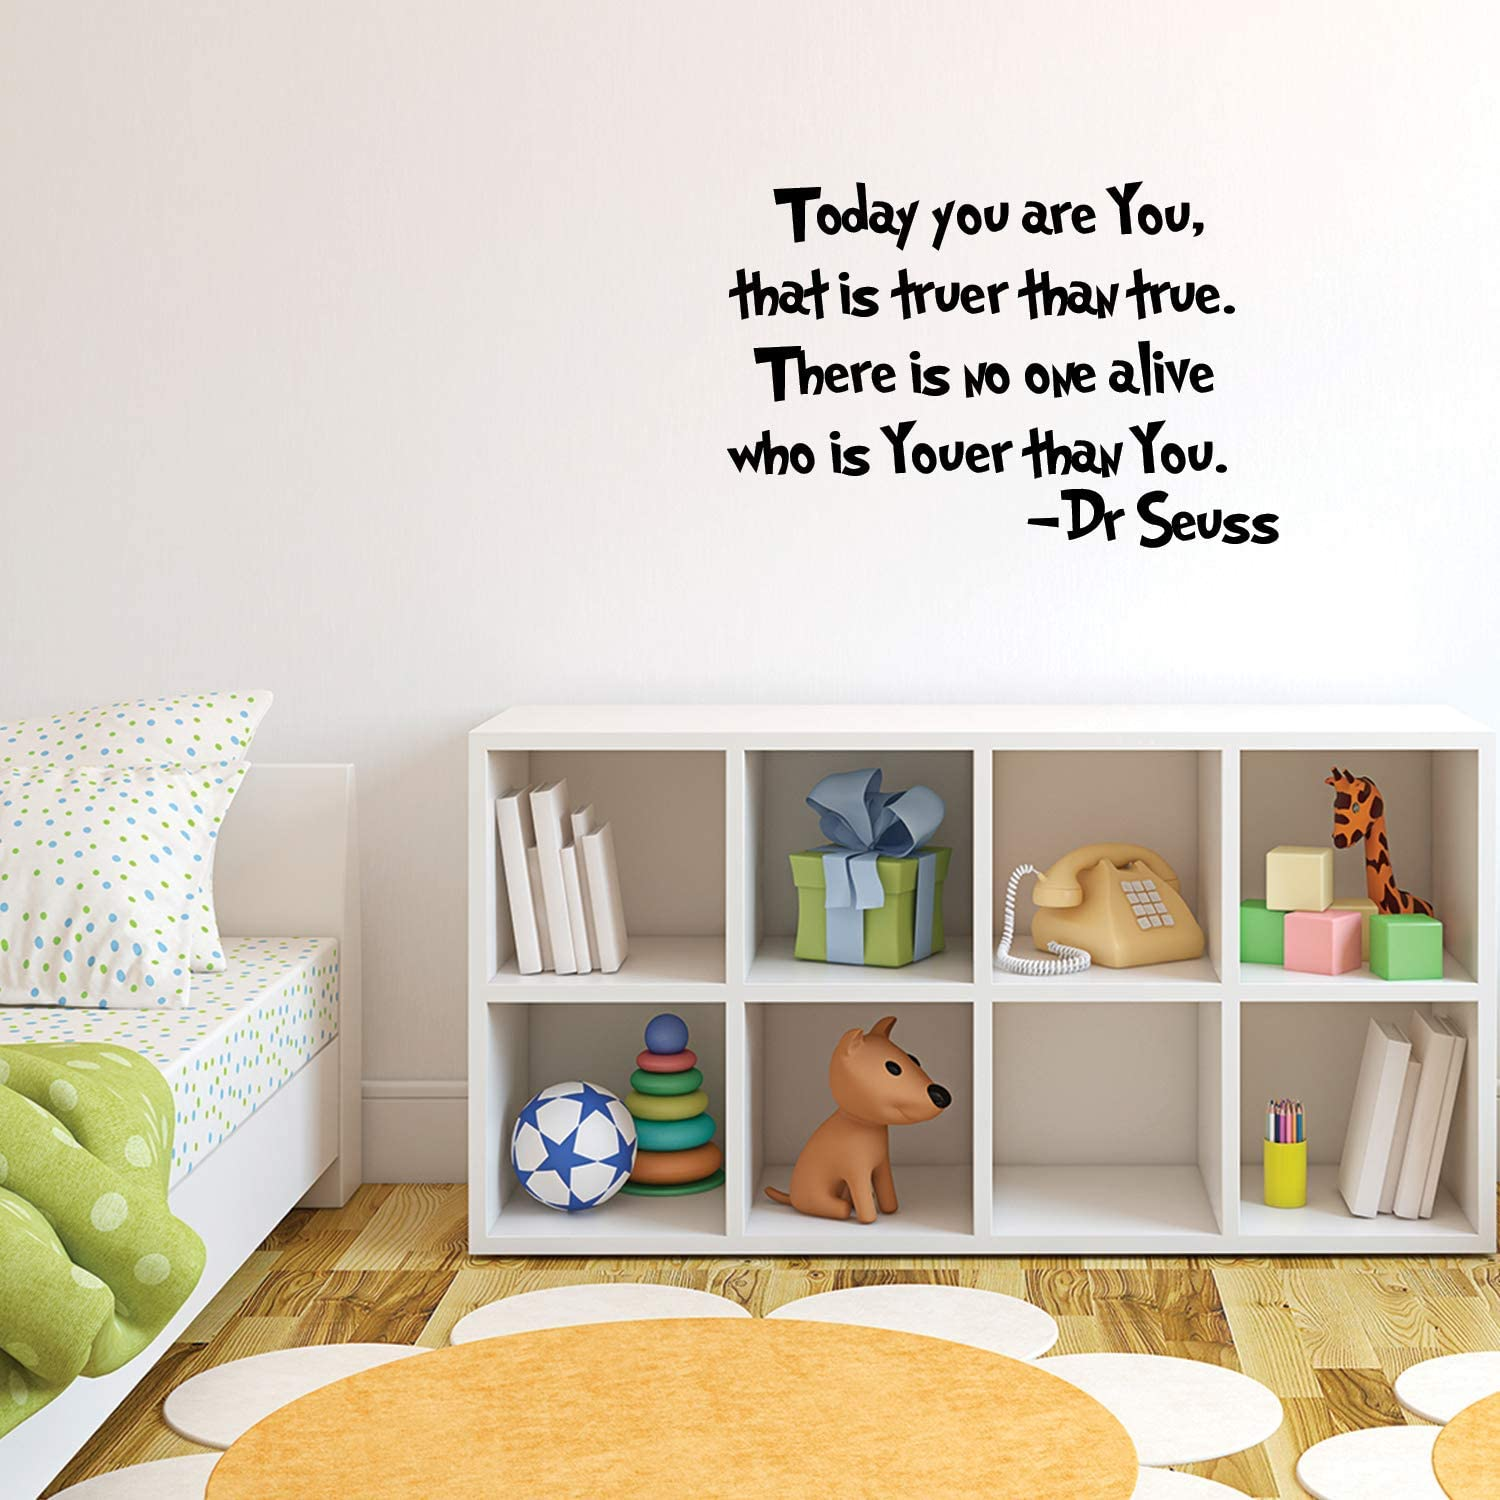 Imprinted Designs Today You Are You That Is Truer Than True Dr Seuss Vinyl Wall Decal Sticker Art Home Kitchen